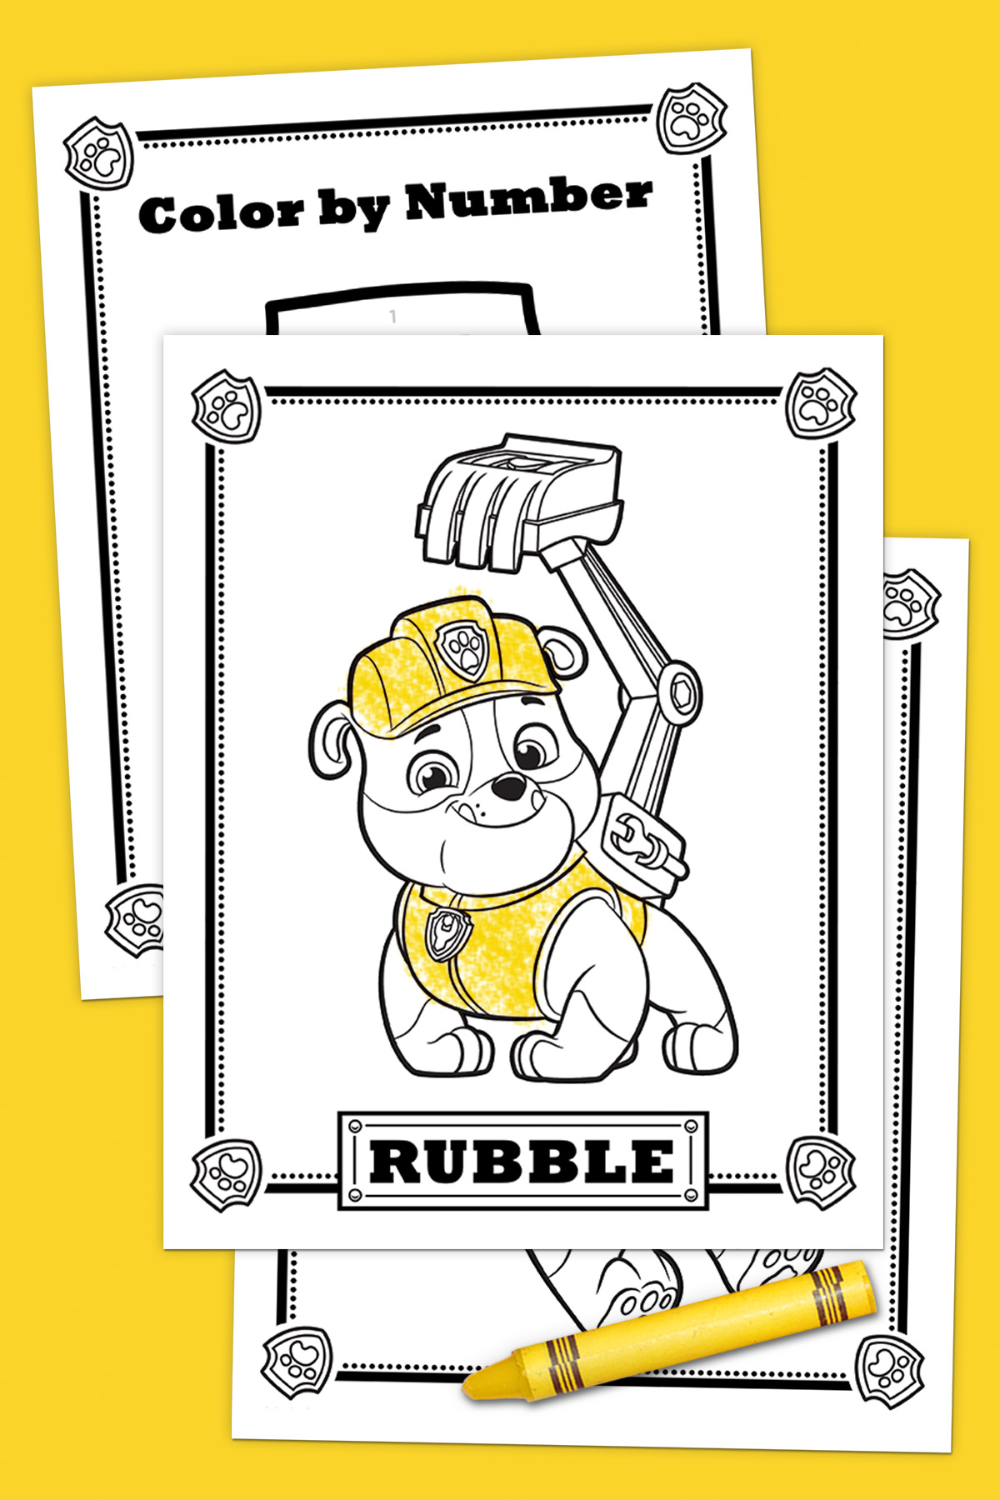 Meet Rubble Activity Pack - Paw patrol birthday, Paw patrol birthday party, Activity pack, Paw patrol party, Rubble paw patrol, Paw patrol - This bulldozing Bulldog is one strong, eager and funny pup  Simply print out this activity pack and your preschooler can color, build and laugh along with